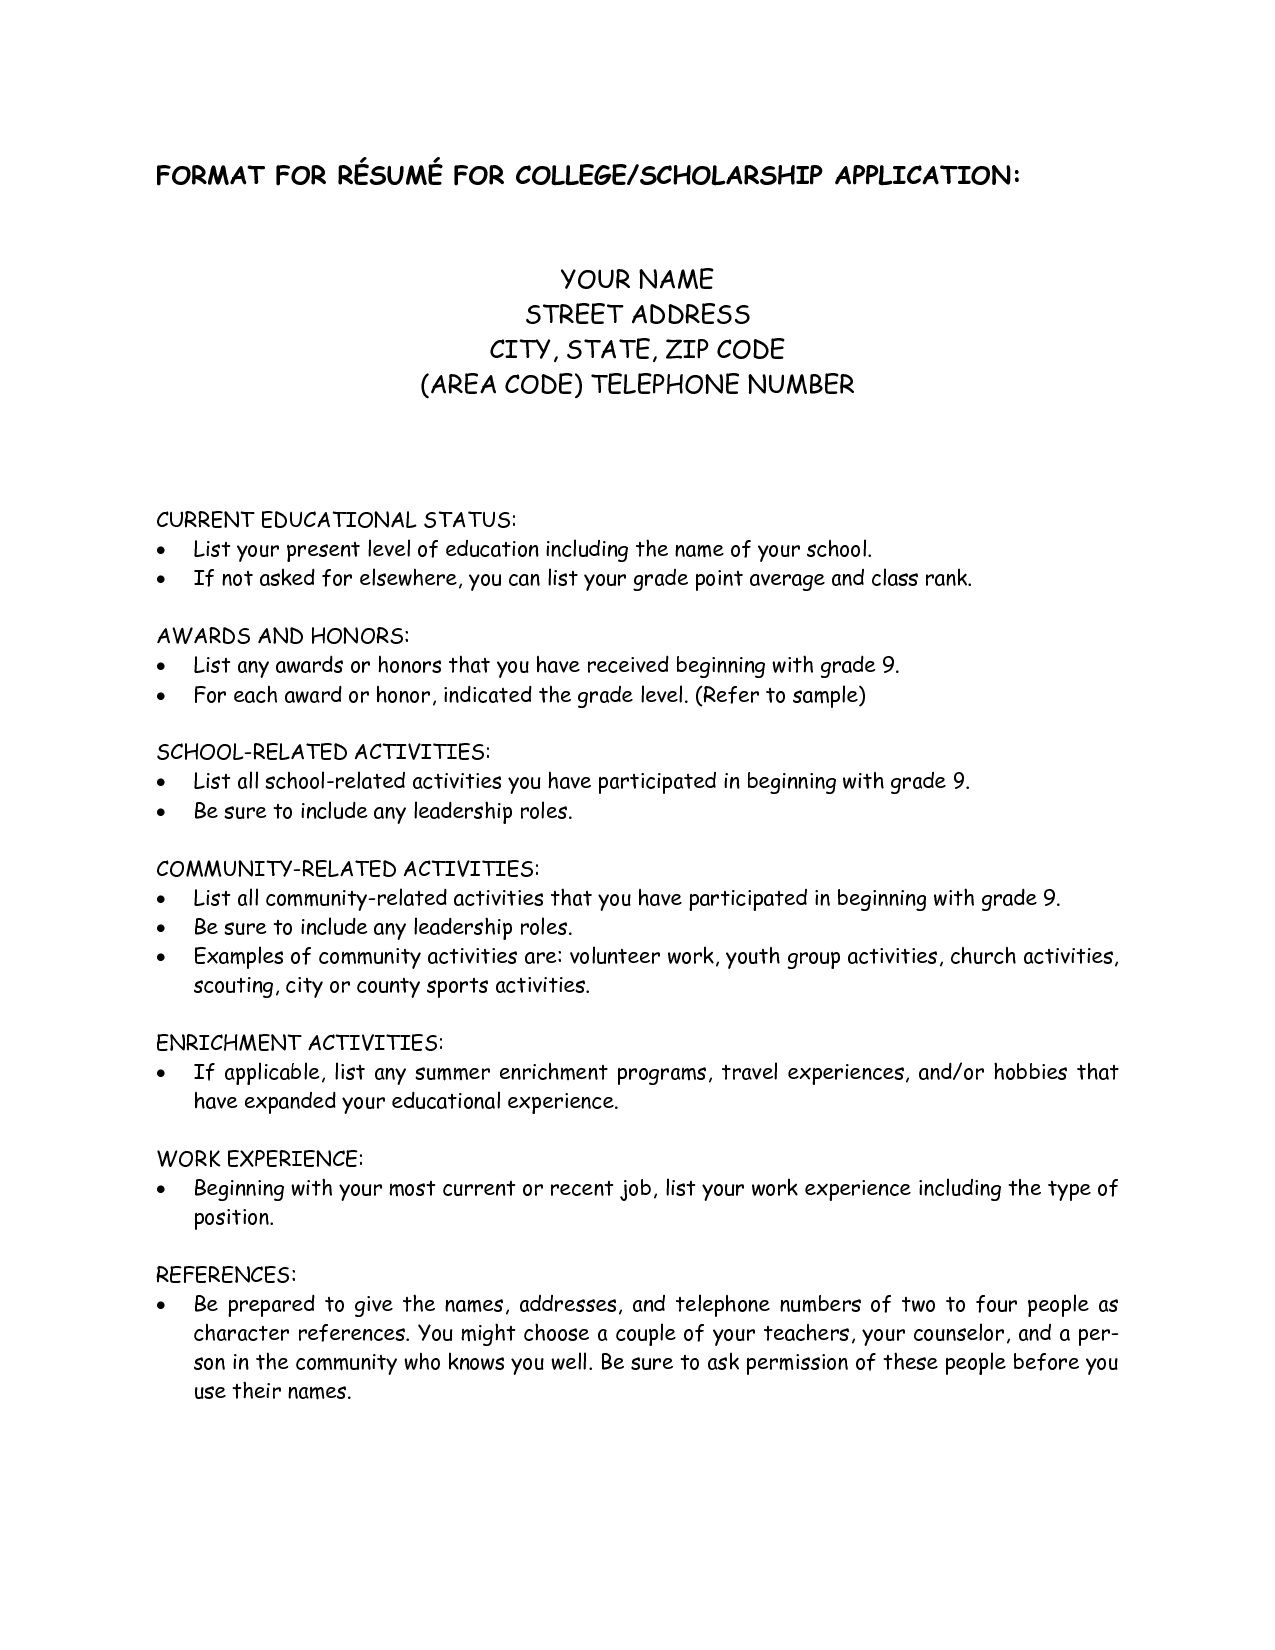 Charming College Scholarship Resume Template #1197    Http://topresume.info/2015/01/09/college Scholarship Resume Template 1197/